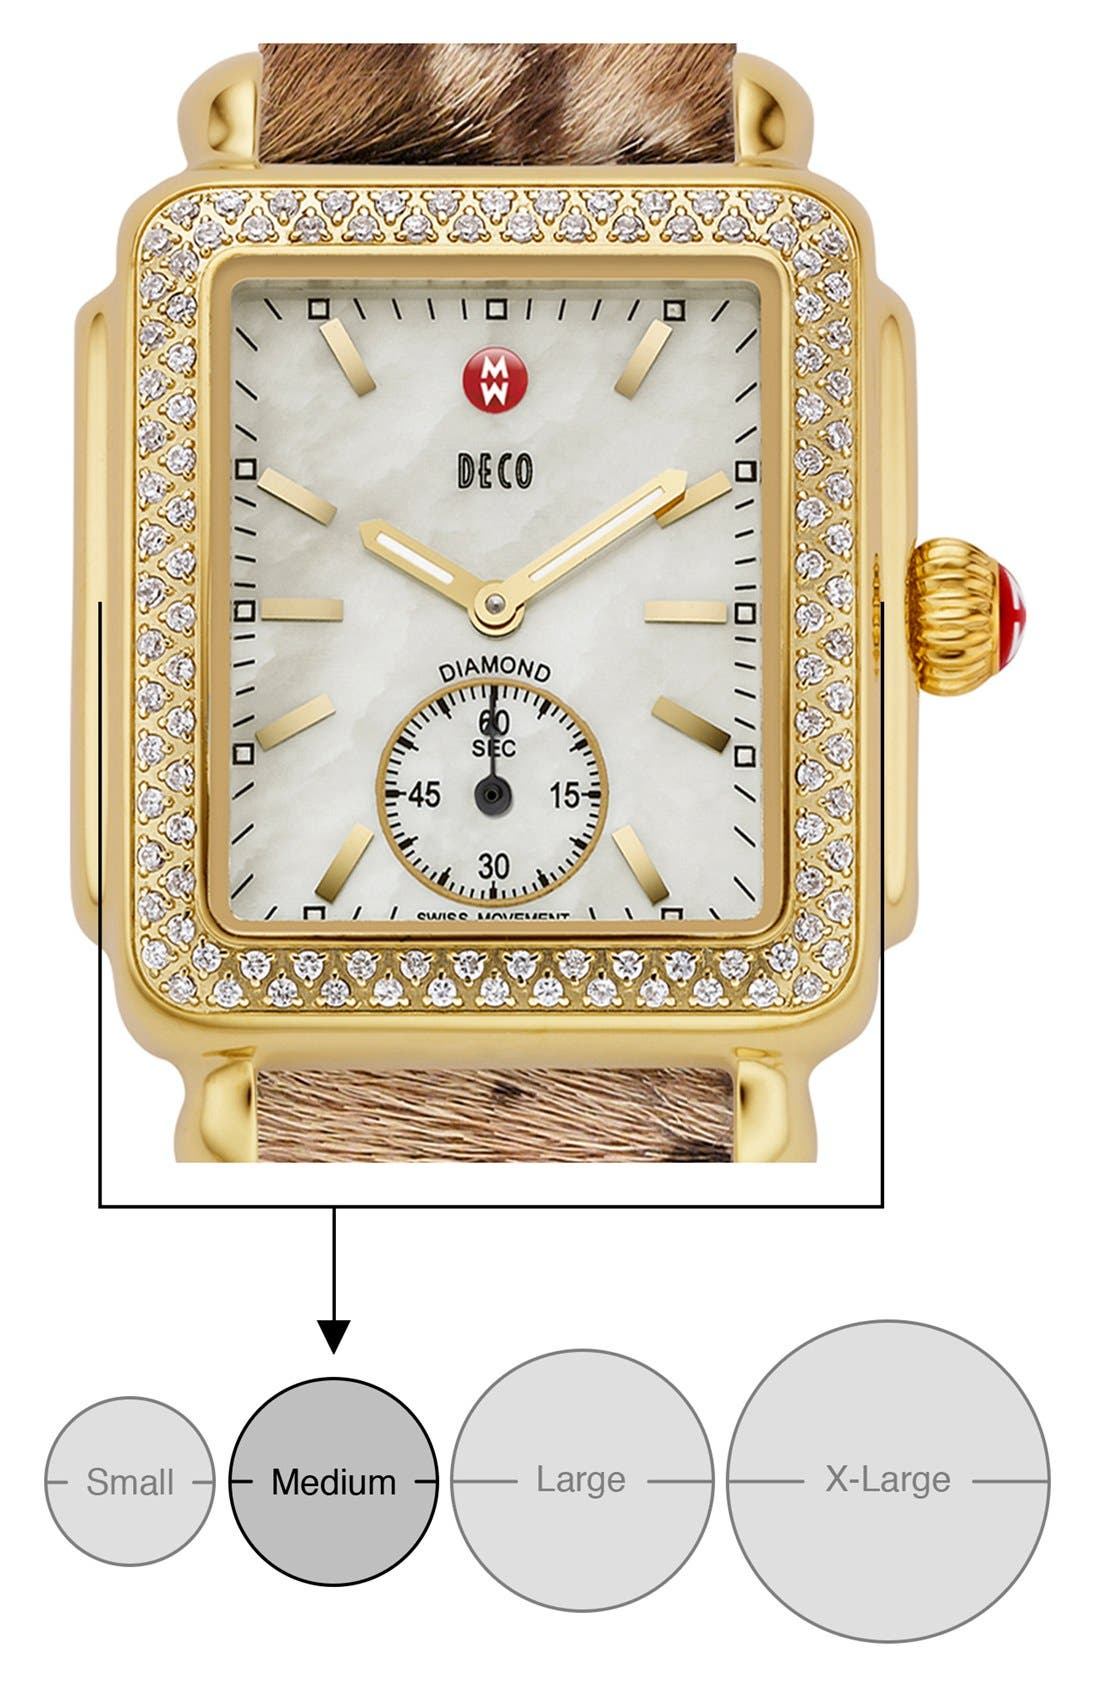 MICHELE, Deco 16 Diamond Gold Plated Watch Head, 29mm x 31mm, Alternate thumbnail 7, color, GOLD